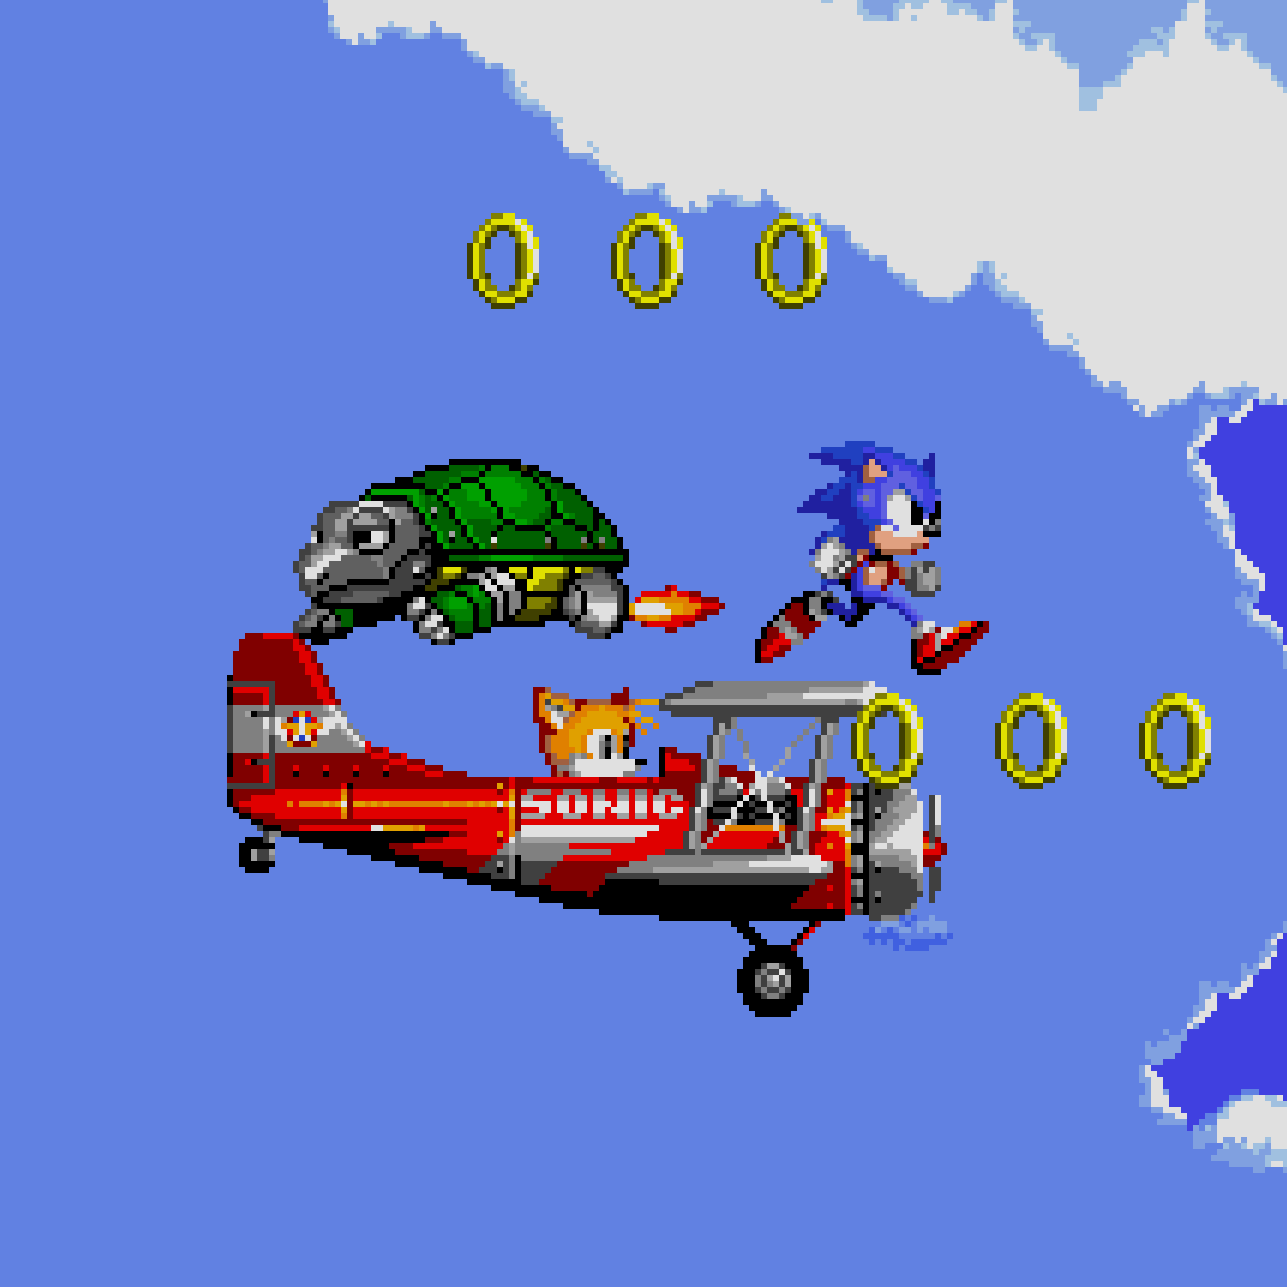 Sonic 2's Sky Chase Zone